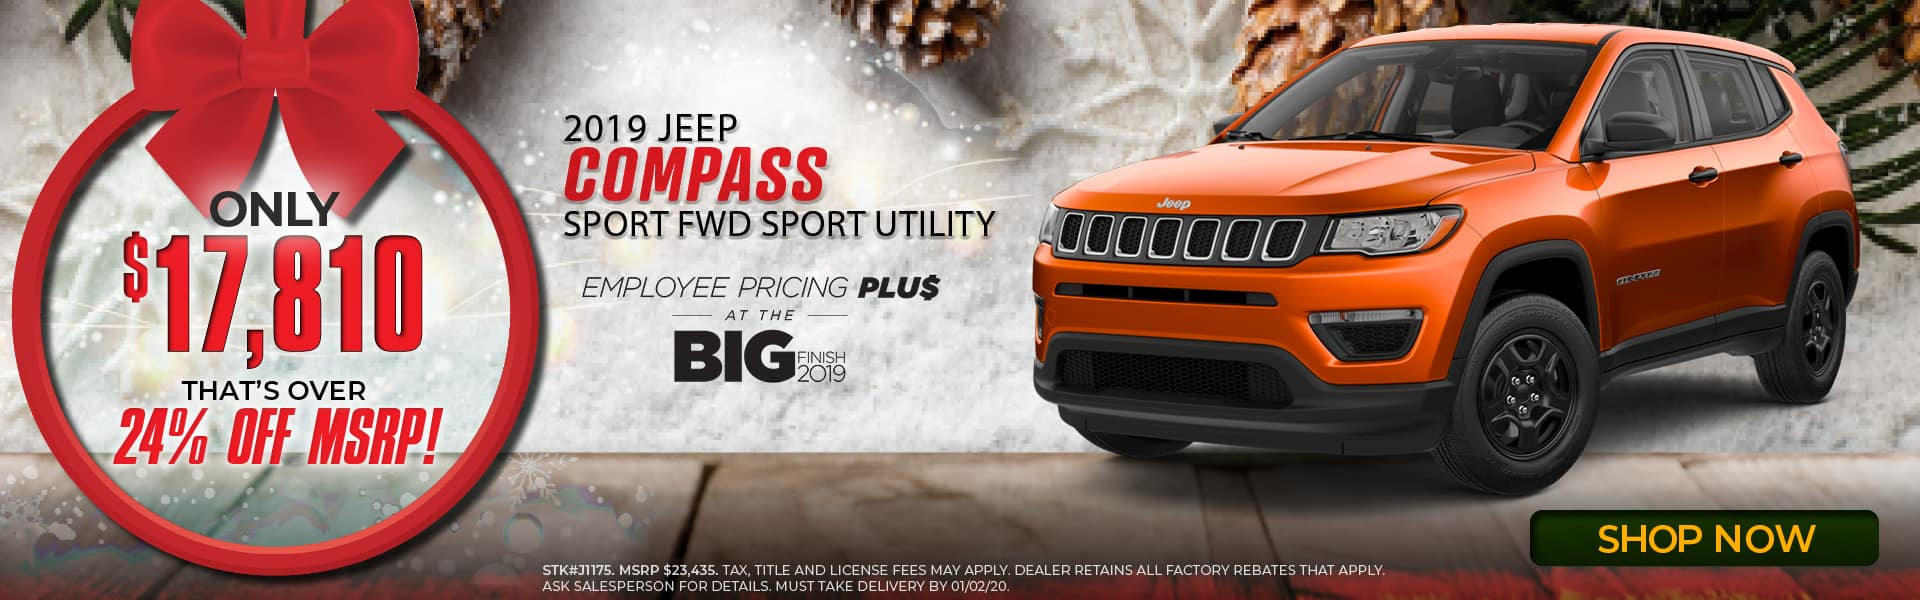 2019 Jeep Compass Special in Middlesboro, KY